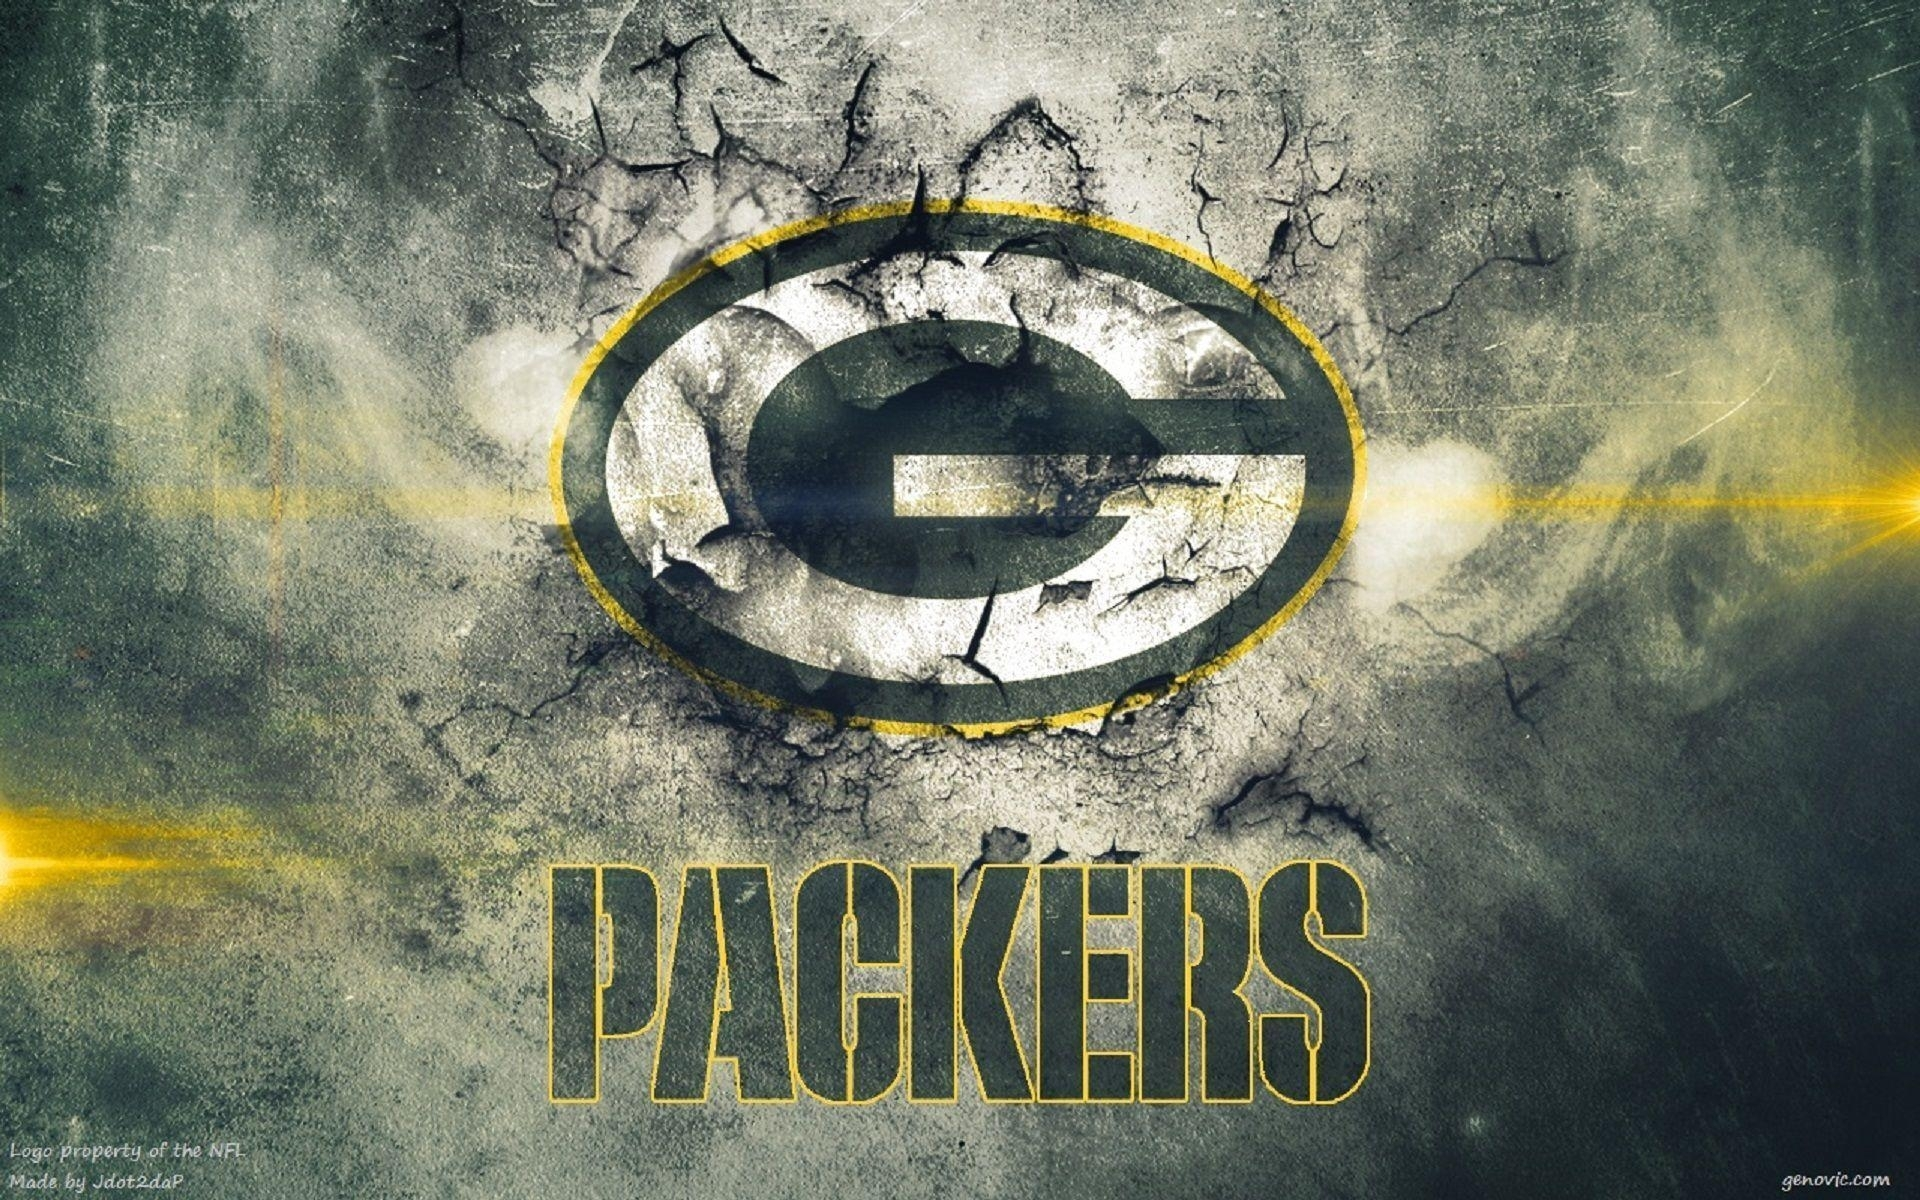 10 Latest Green Bay Screen Savers FULL HD 1080p For PC Desktop